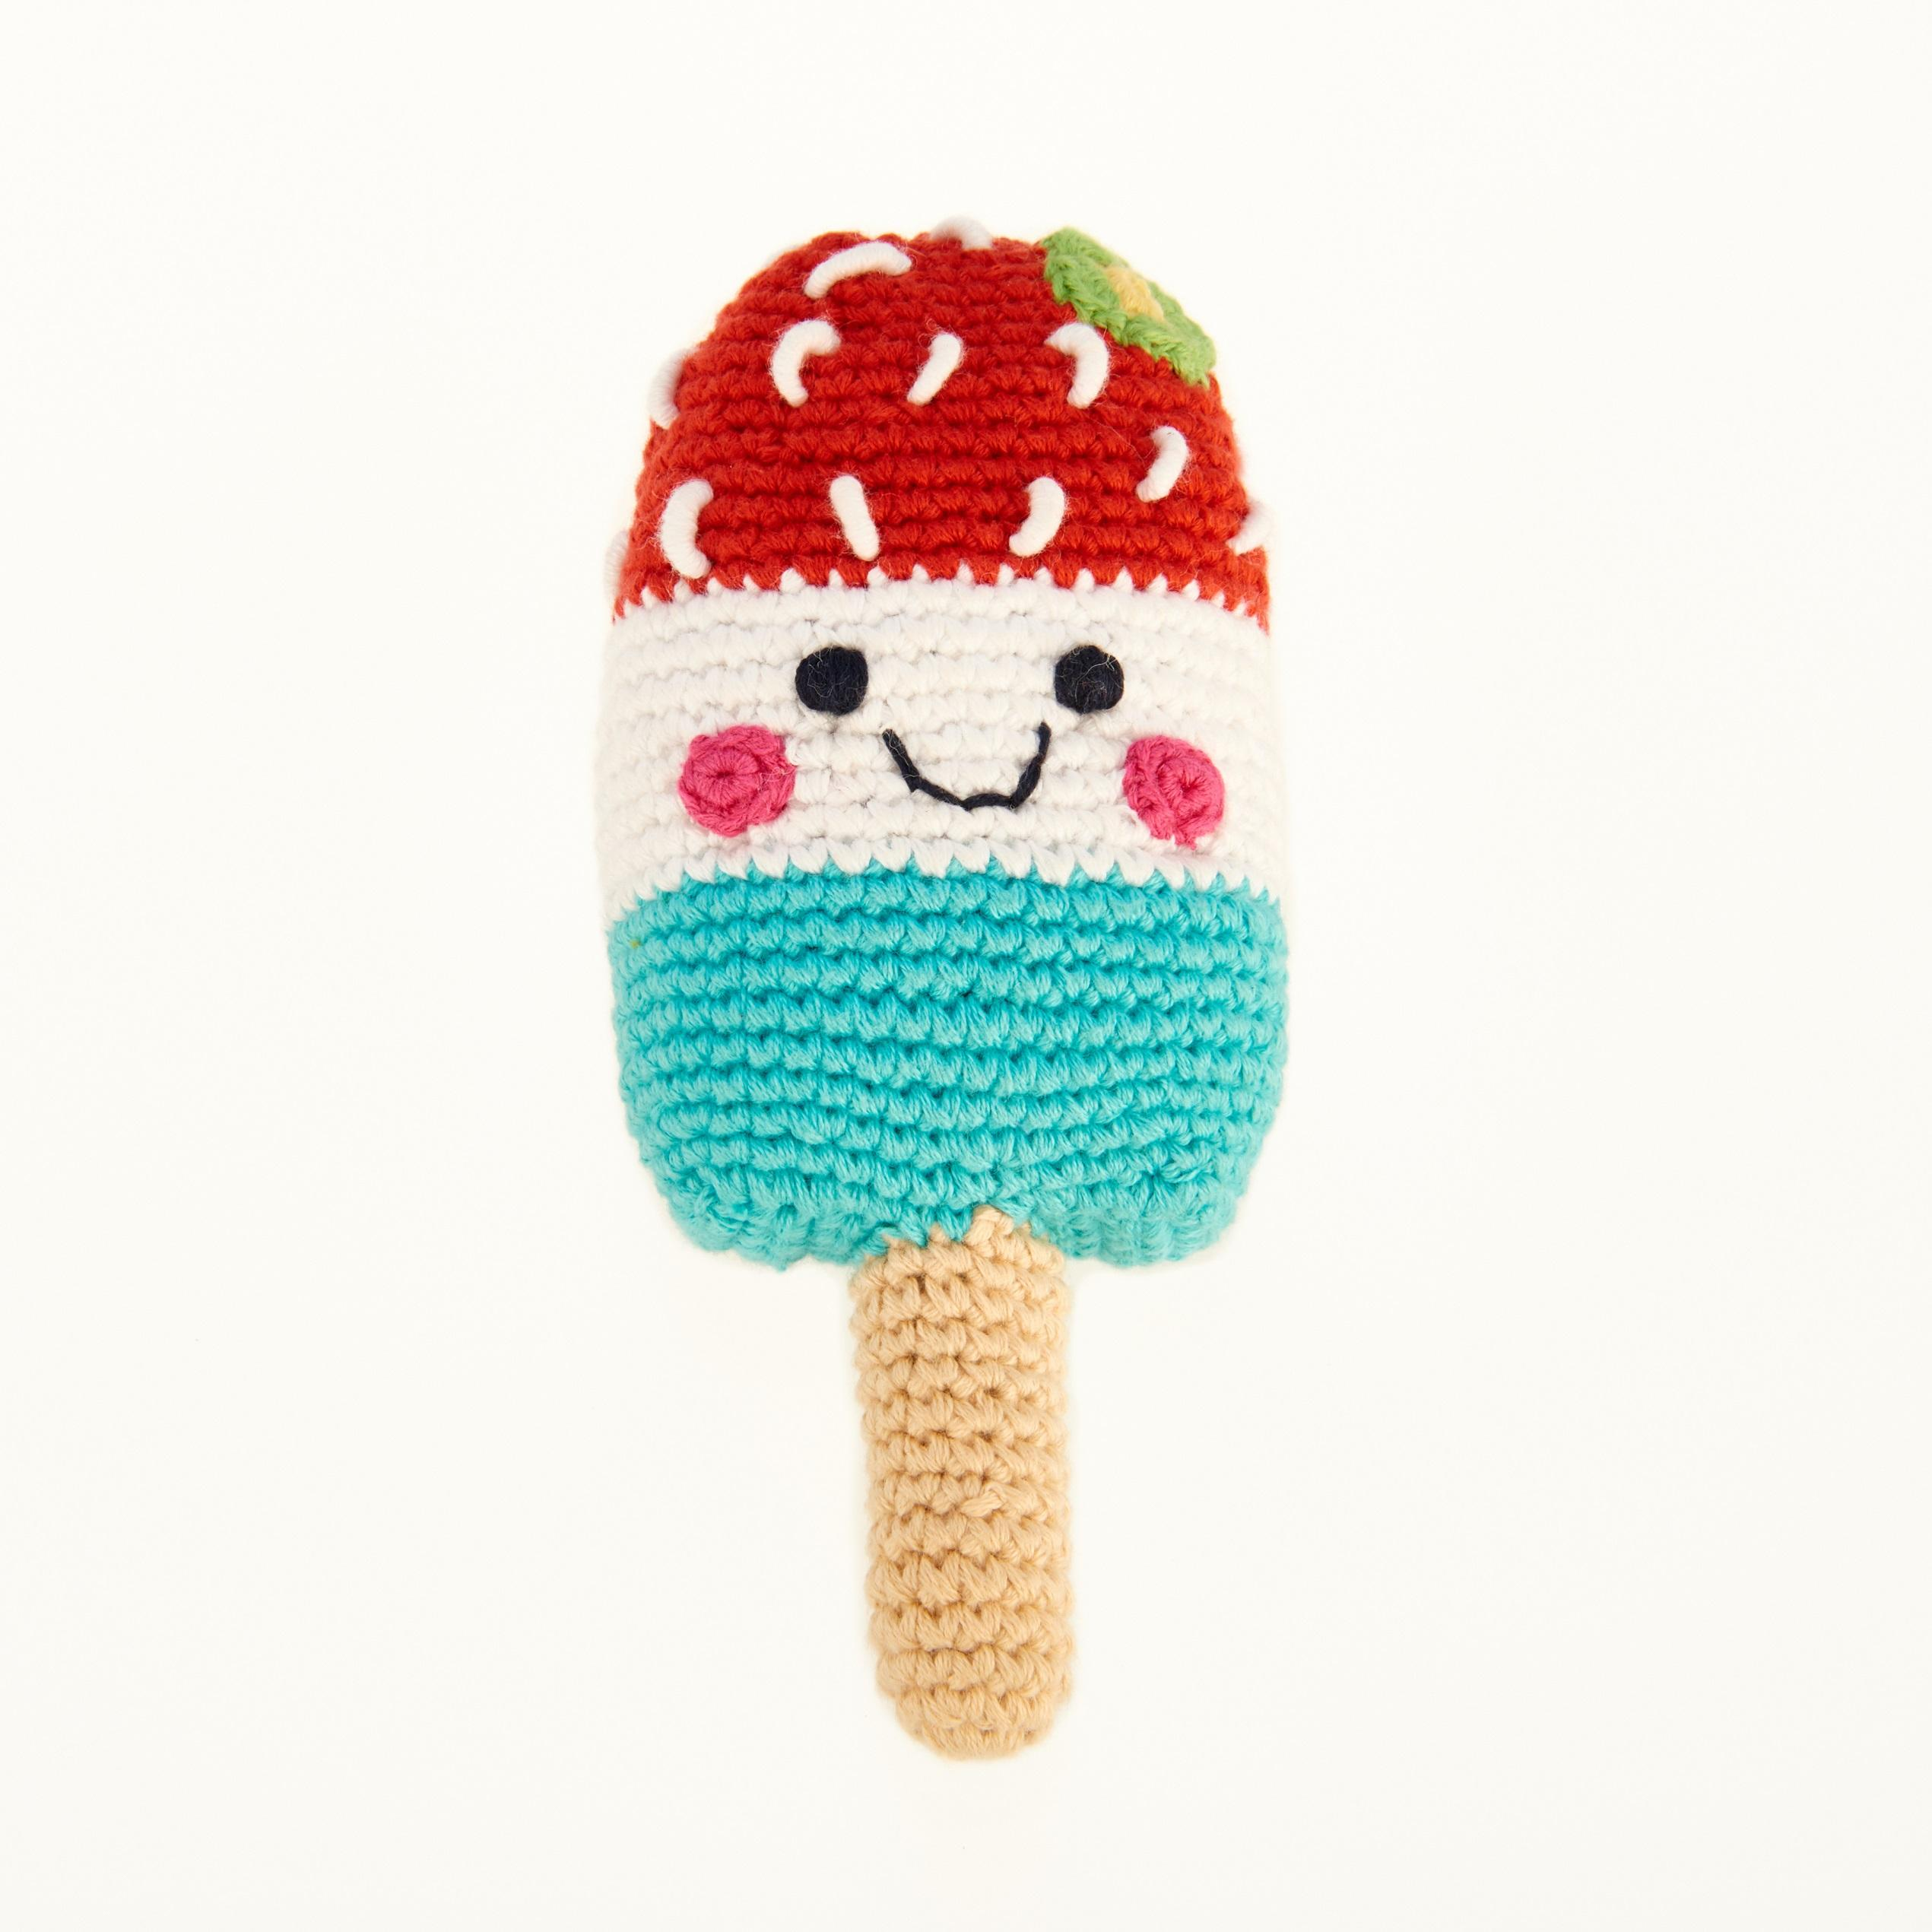 Ice lolly baby toy, crochet in blue, white and red with a smiley face and sprinkles